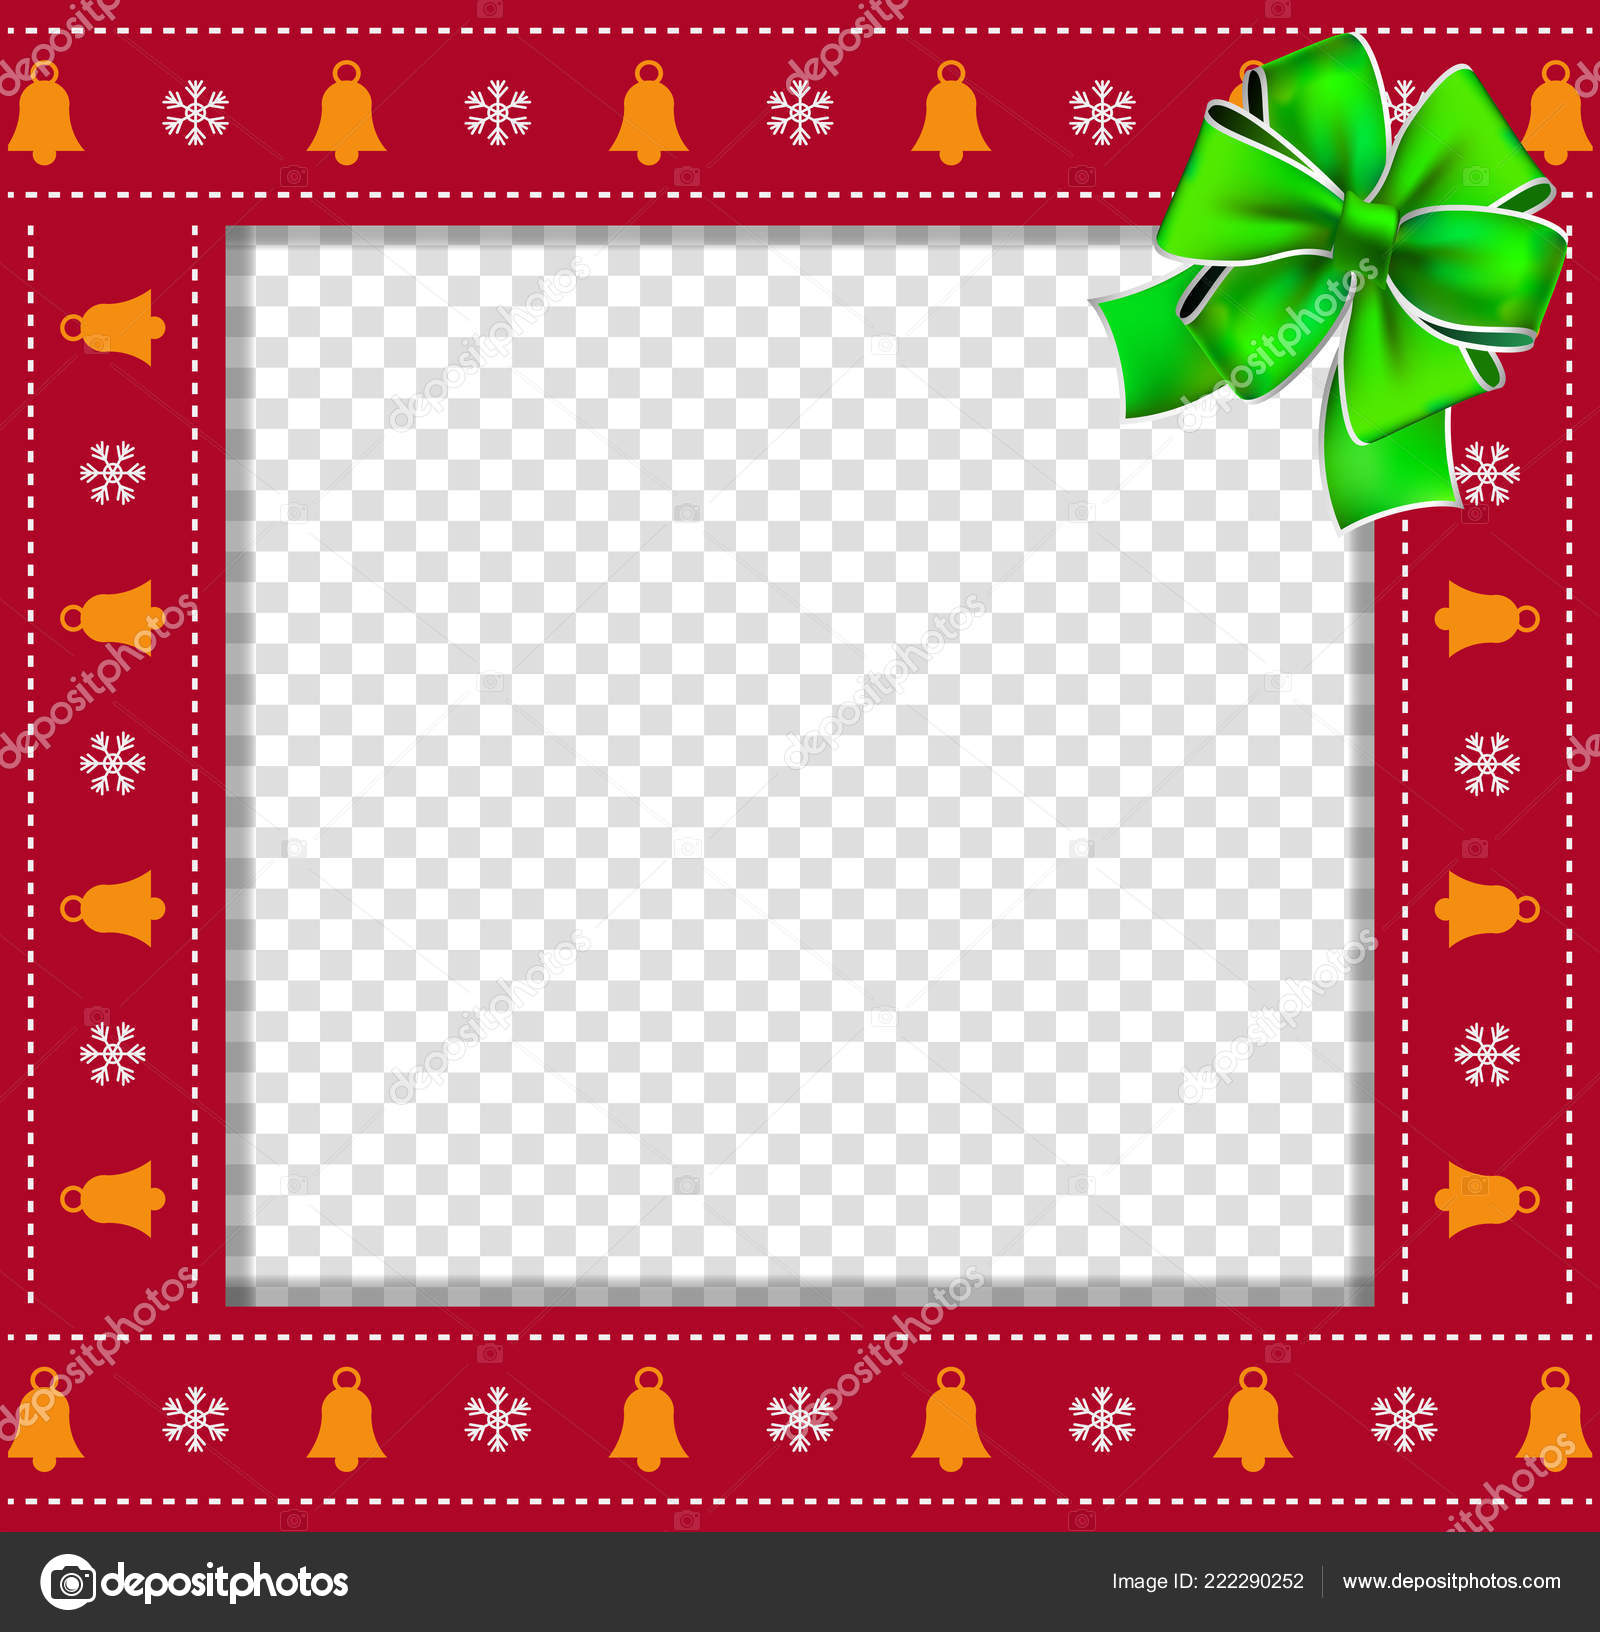 cute christmas new year square border photo frame bells snowflakes stock vector